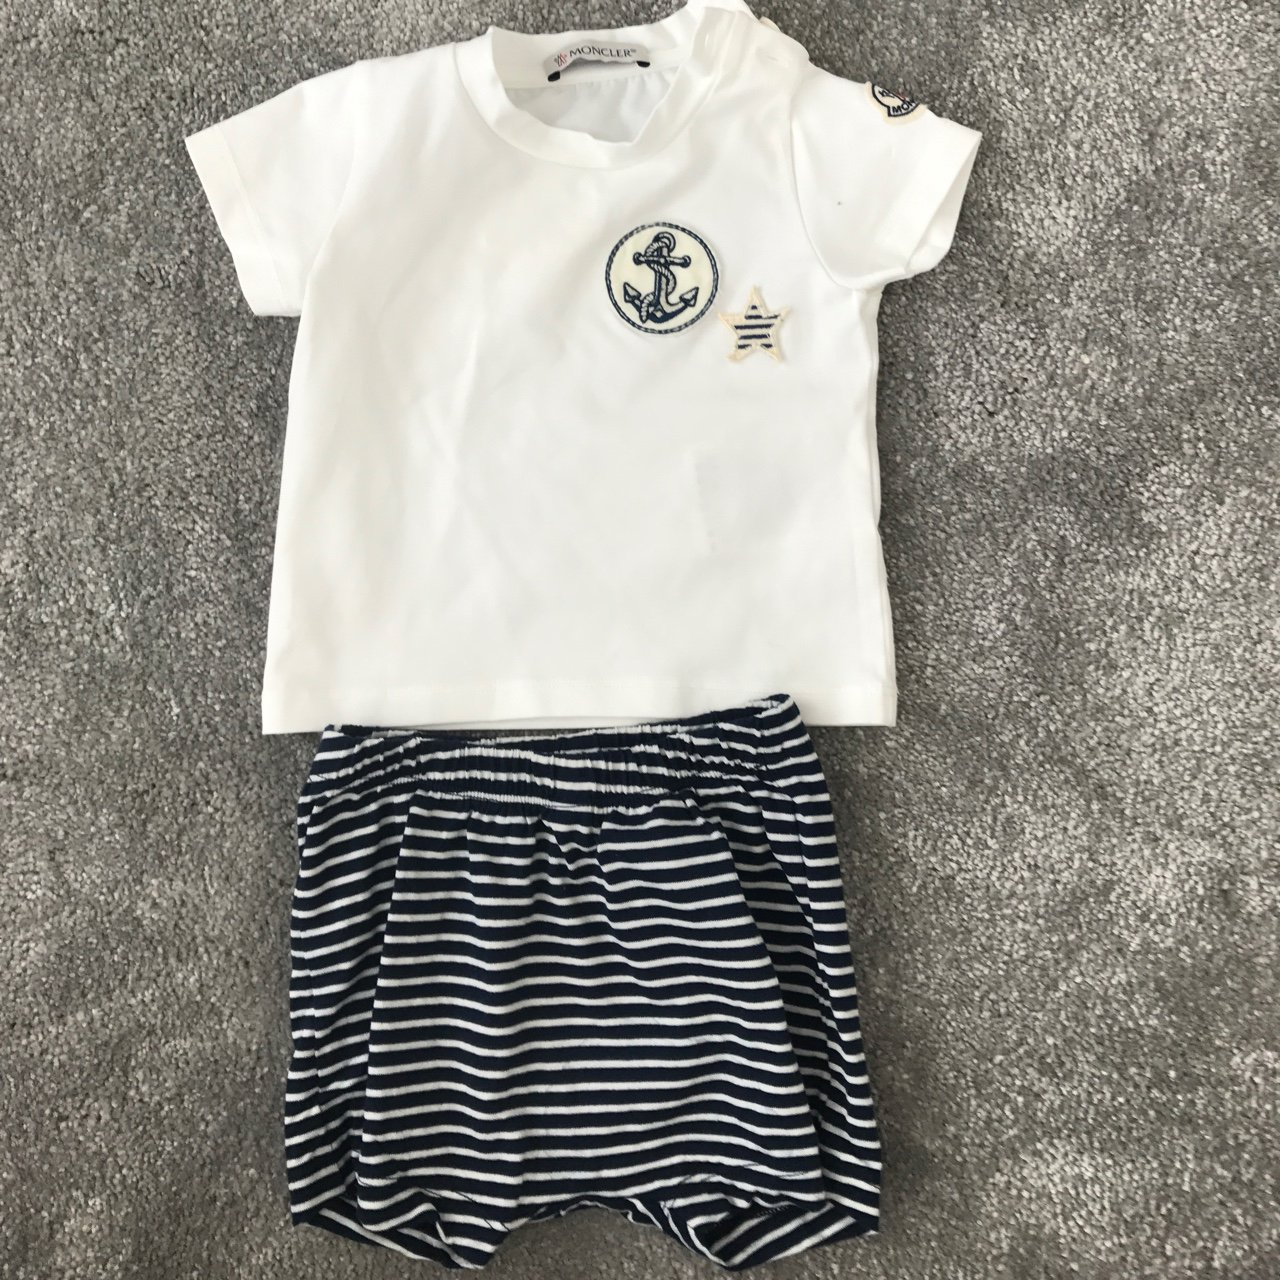 a1382dbecce2 Moncler baby boy top and shorts. Size 3 6 months. Worn only - Depop